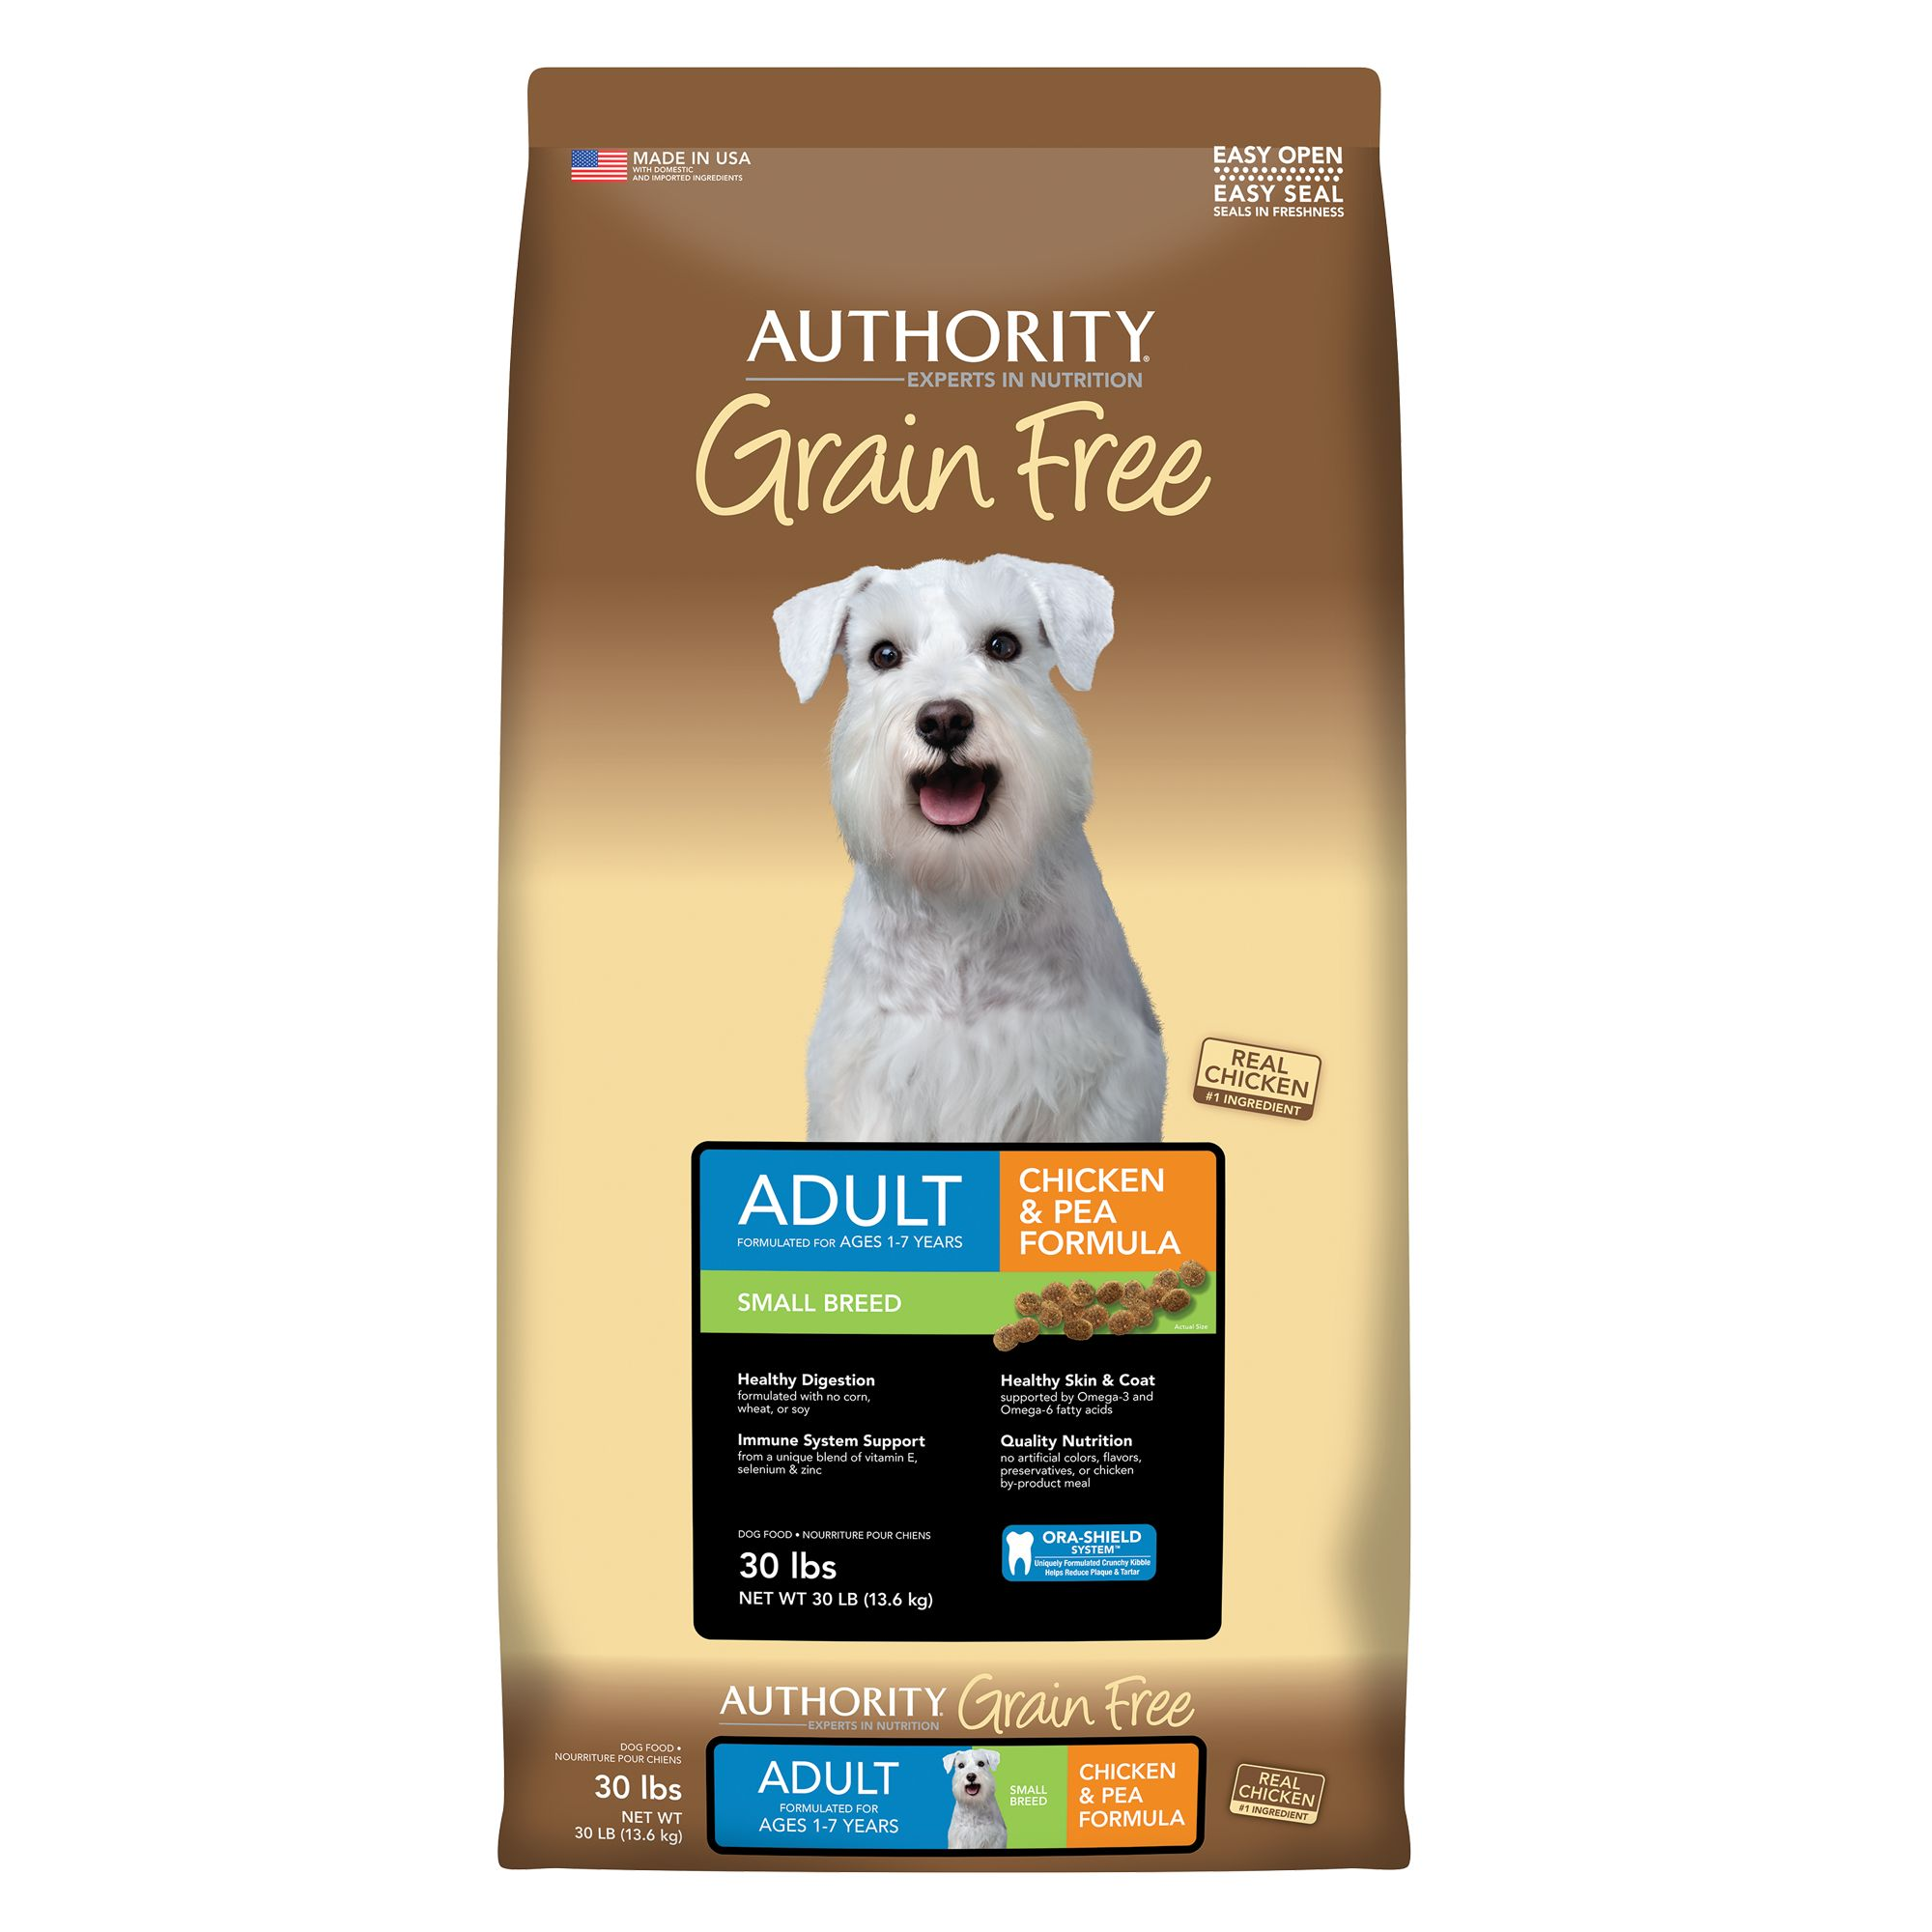 authority grain free dog food review rating recalls - 750×750